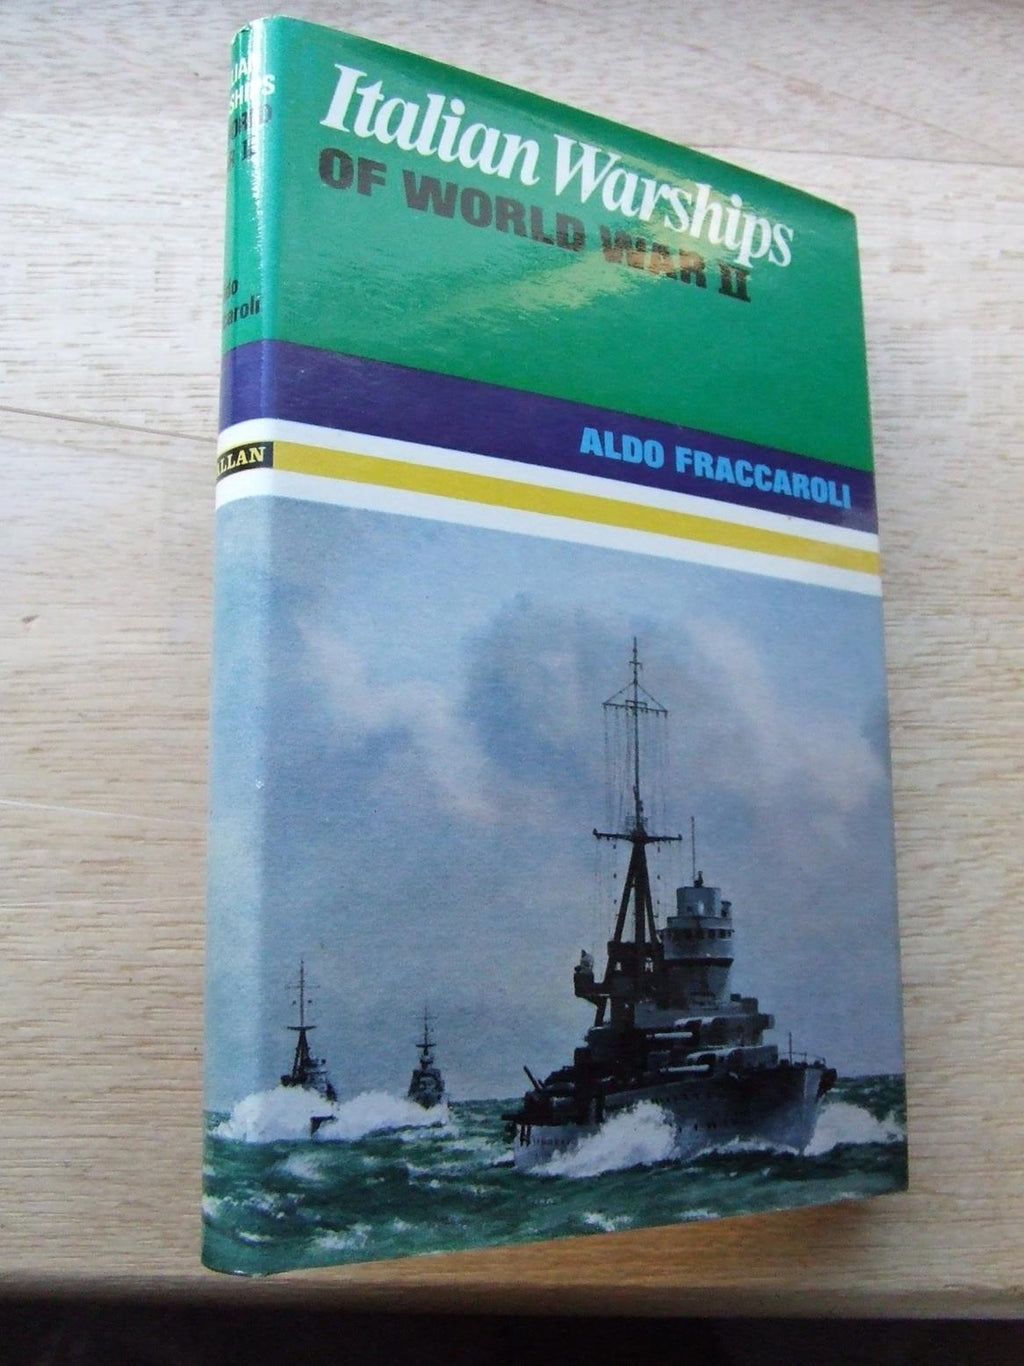 Italian Warships of World War II